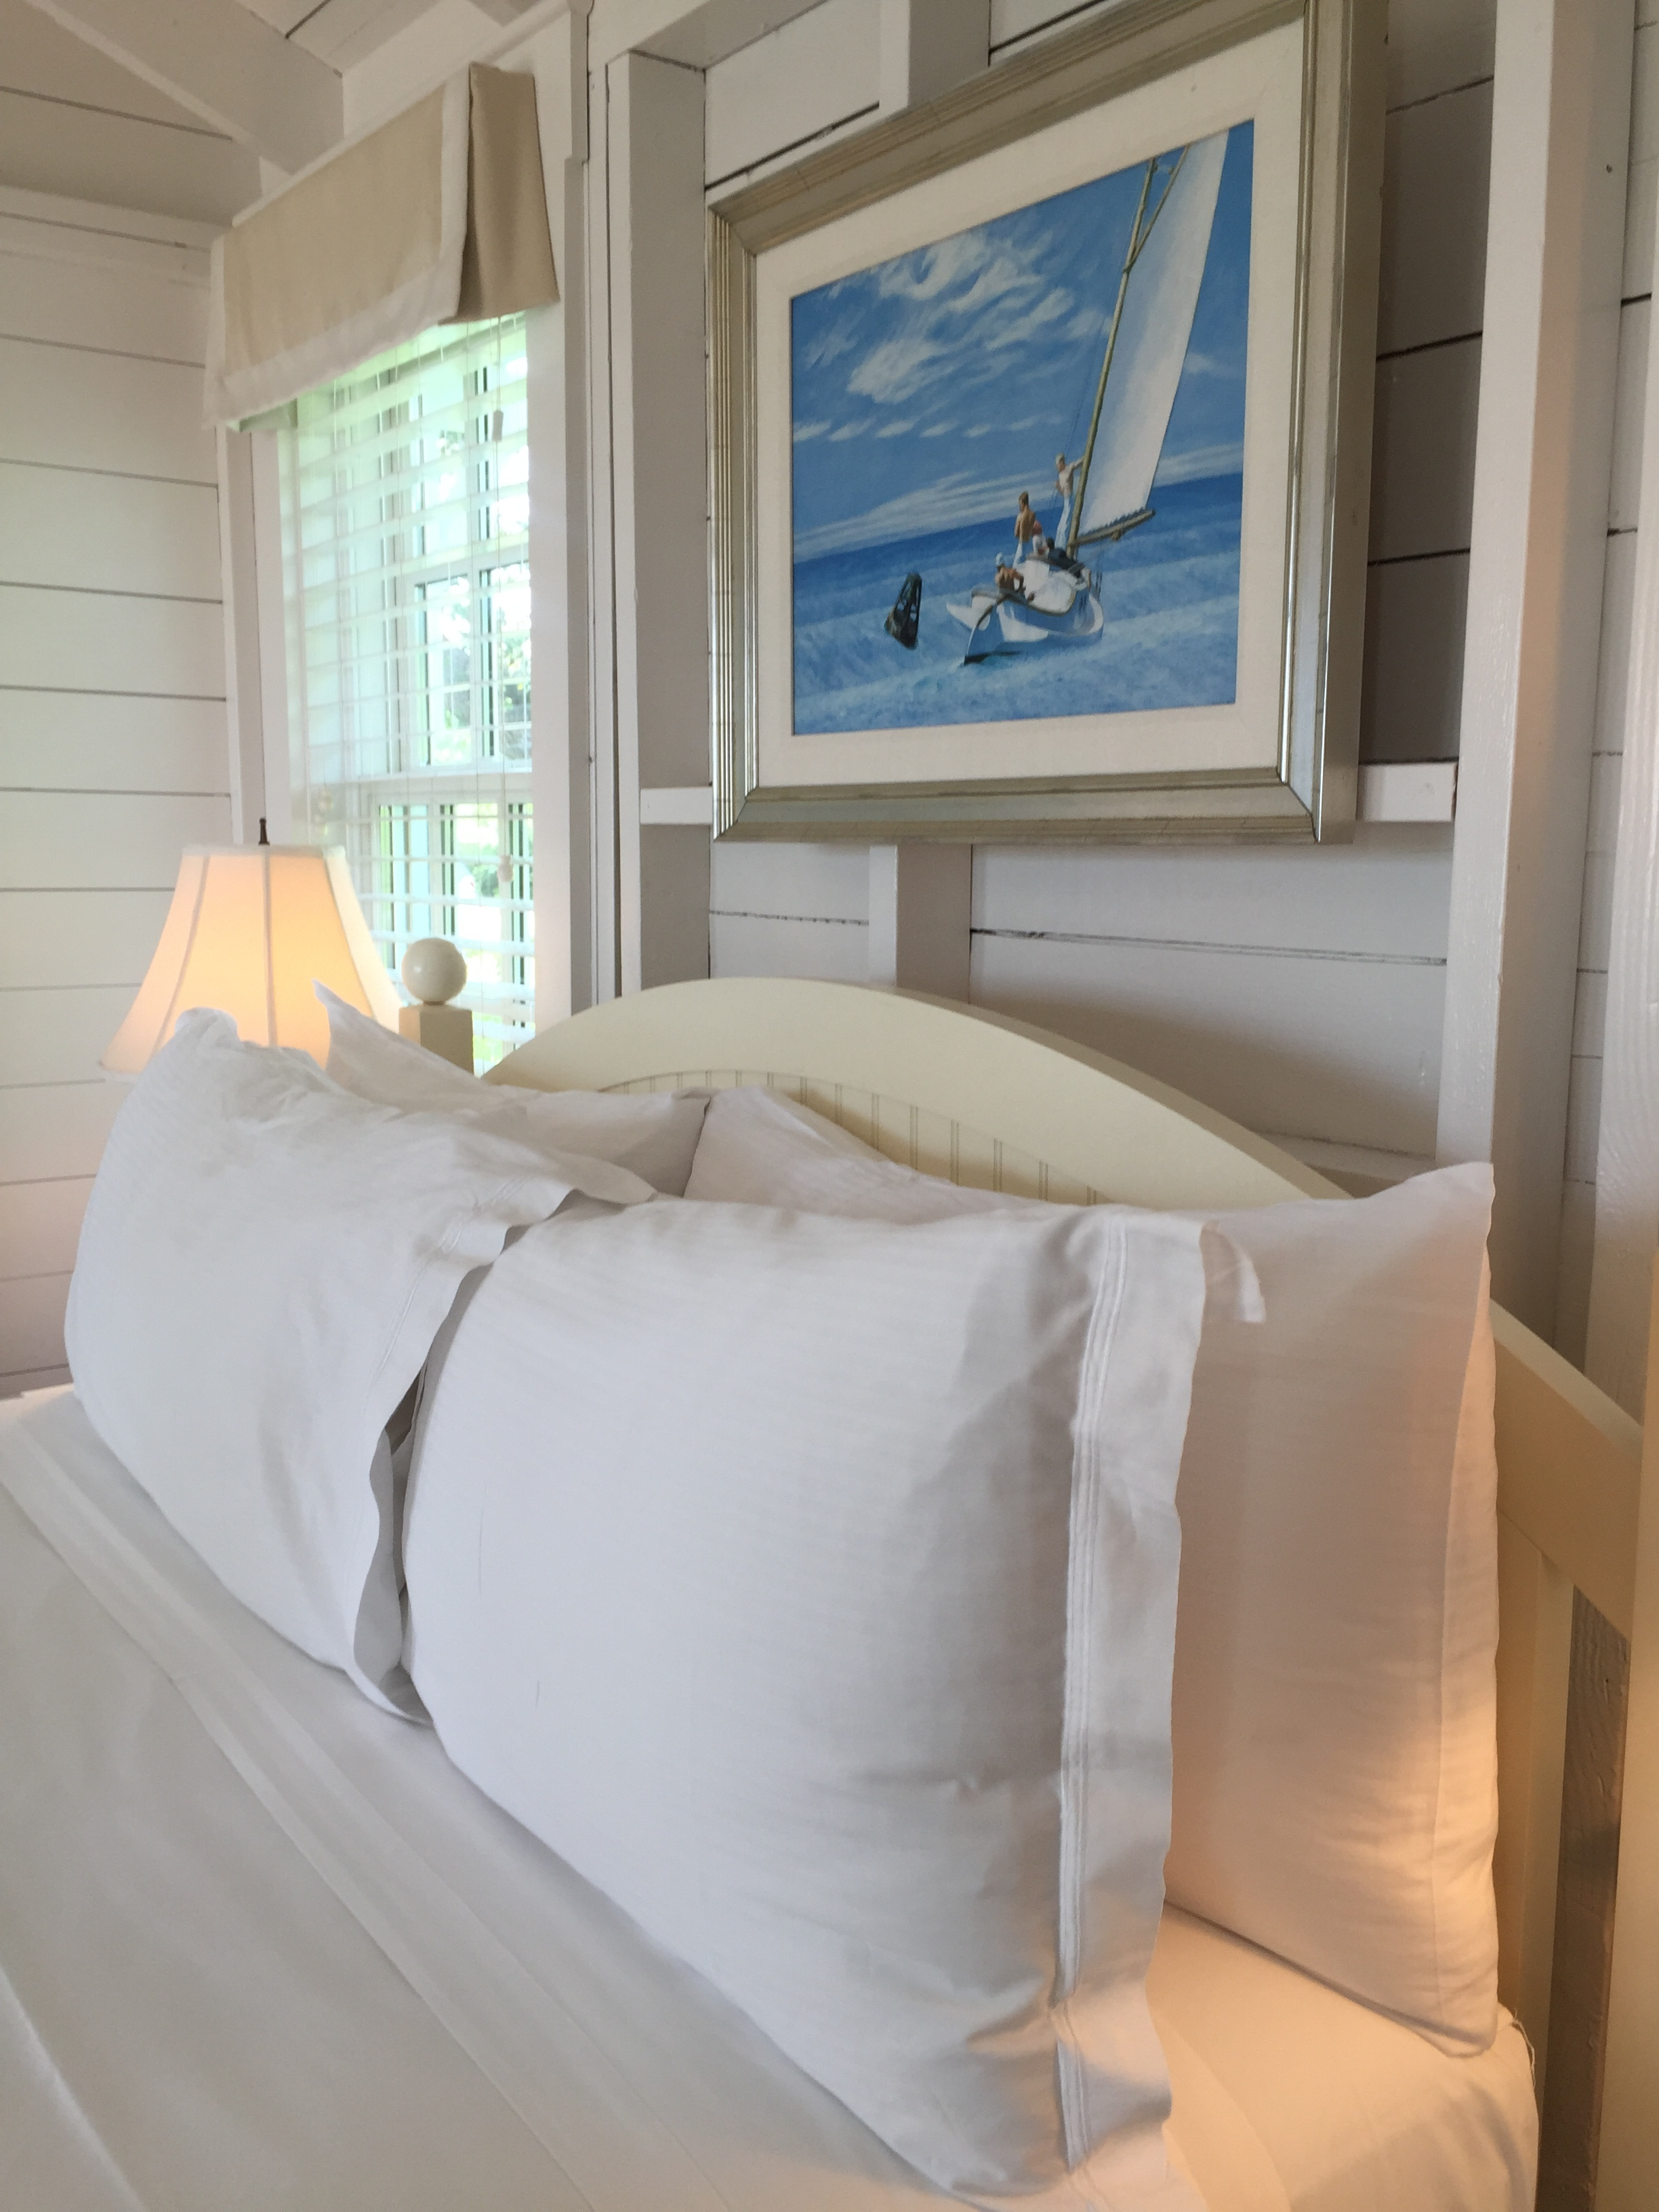 Ahhhh a bed dressed in crisp white sheets was already calling my name.